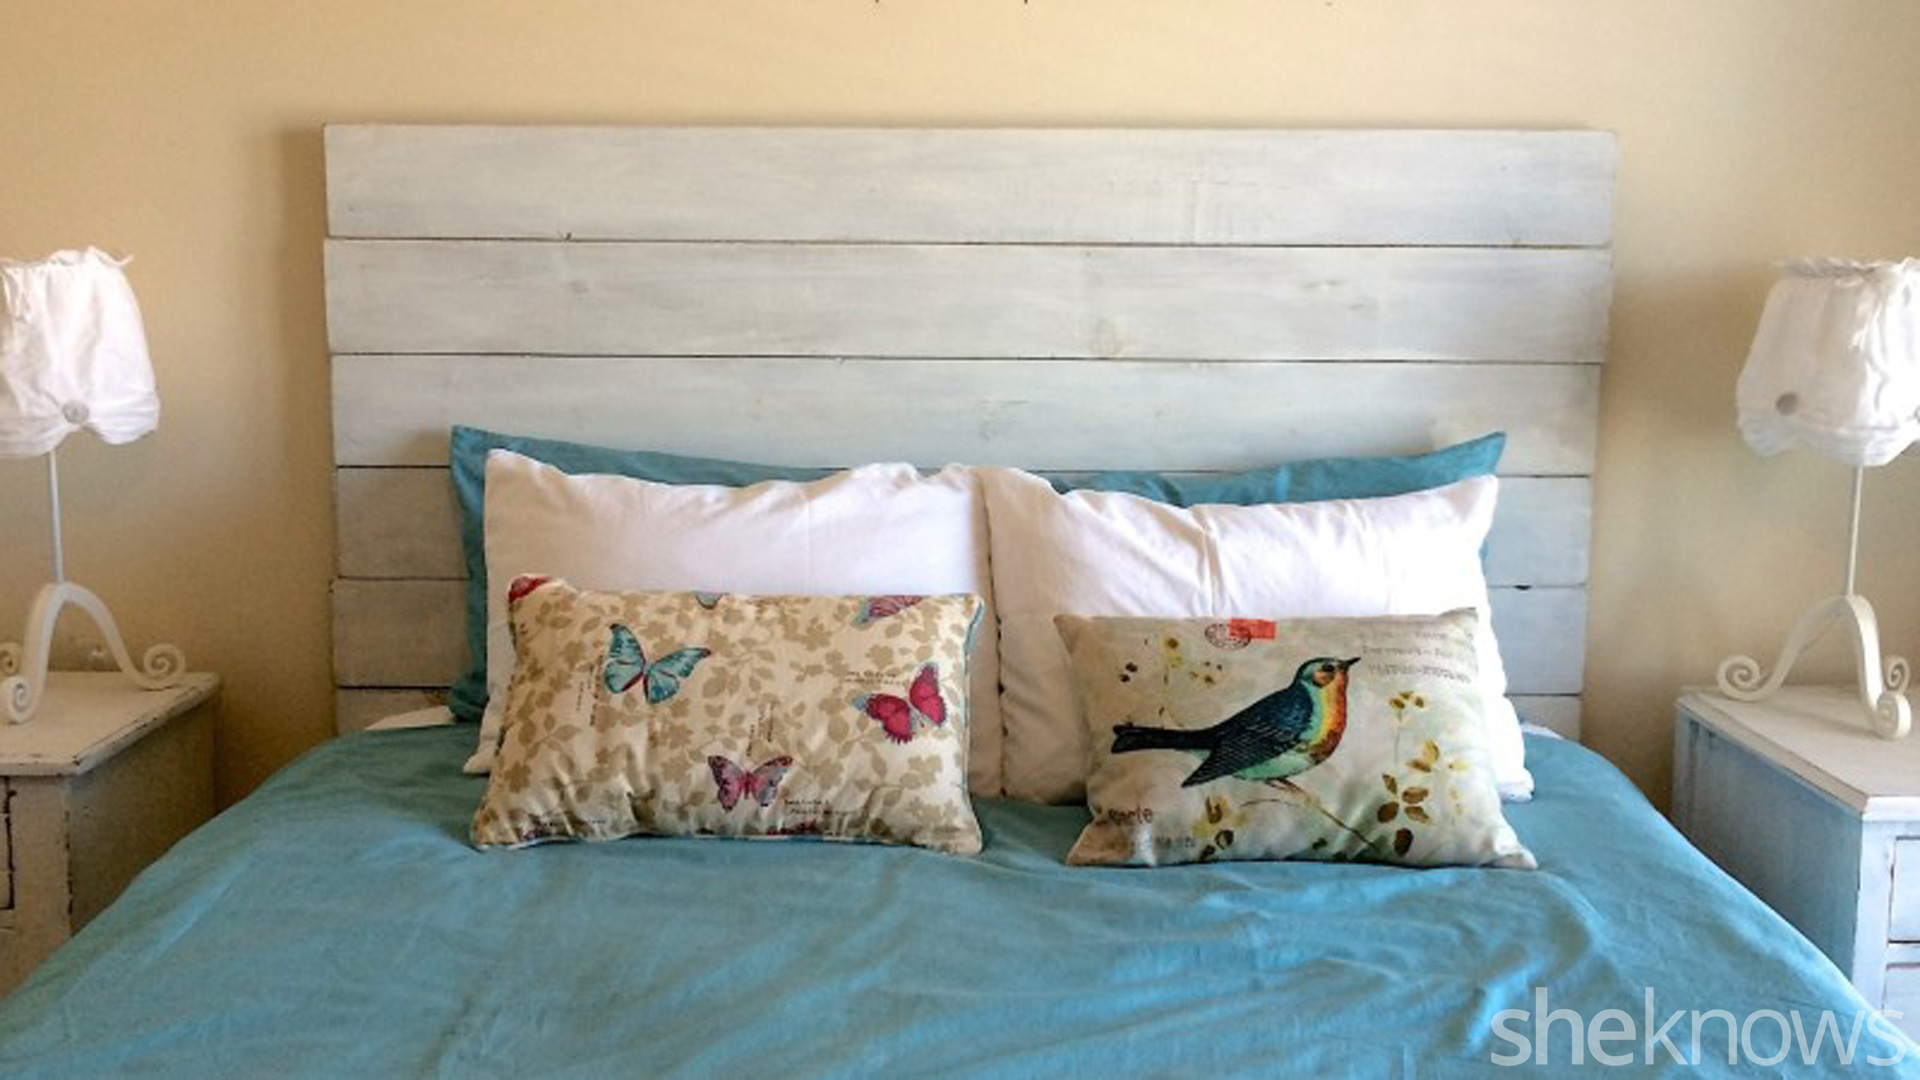 Diy Wooden Headboard Makes Your Bedroom Instantly Farmer Chic Sheknows